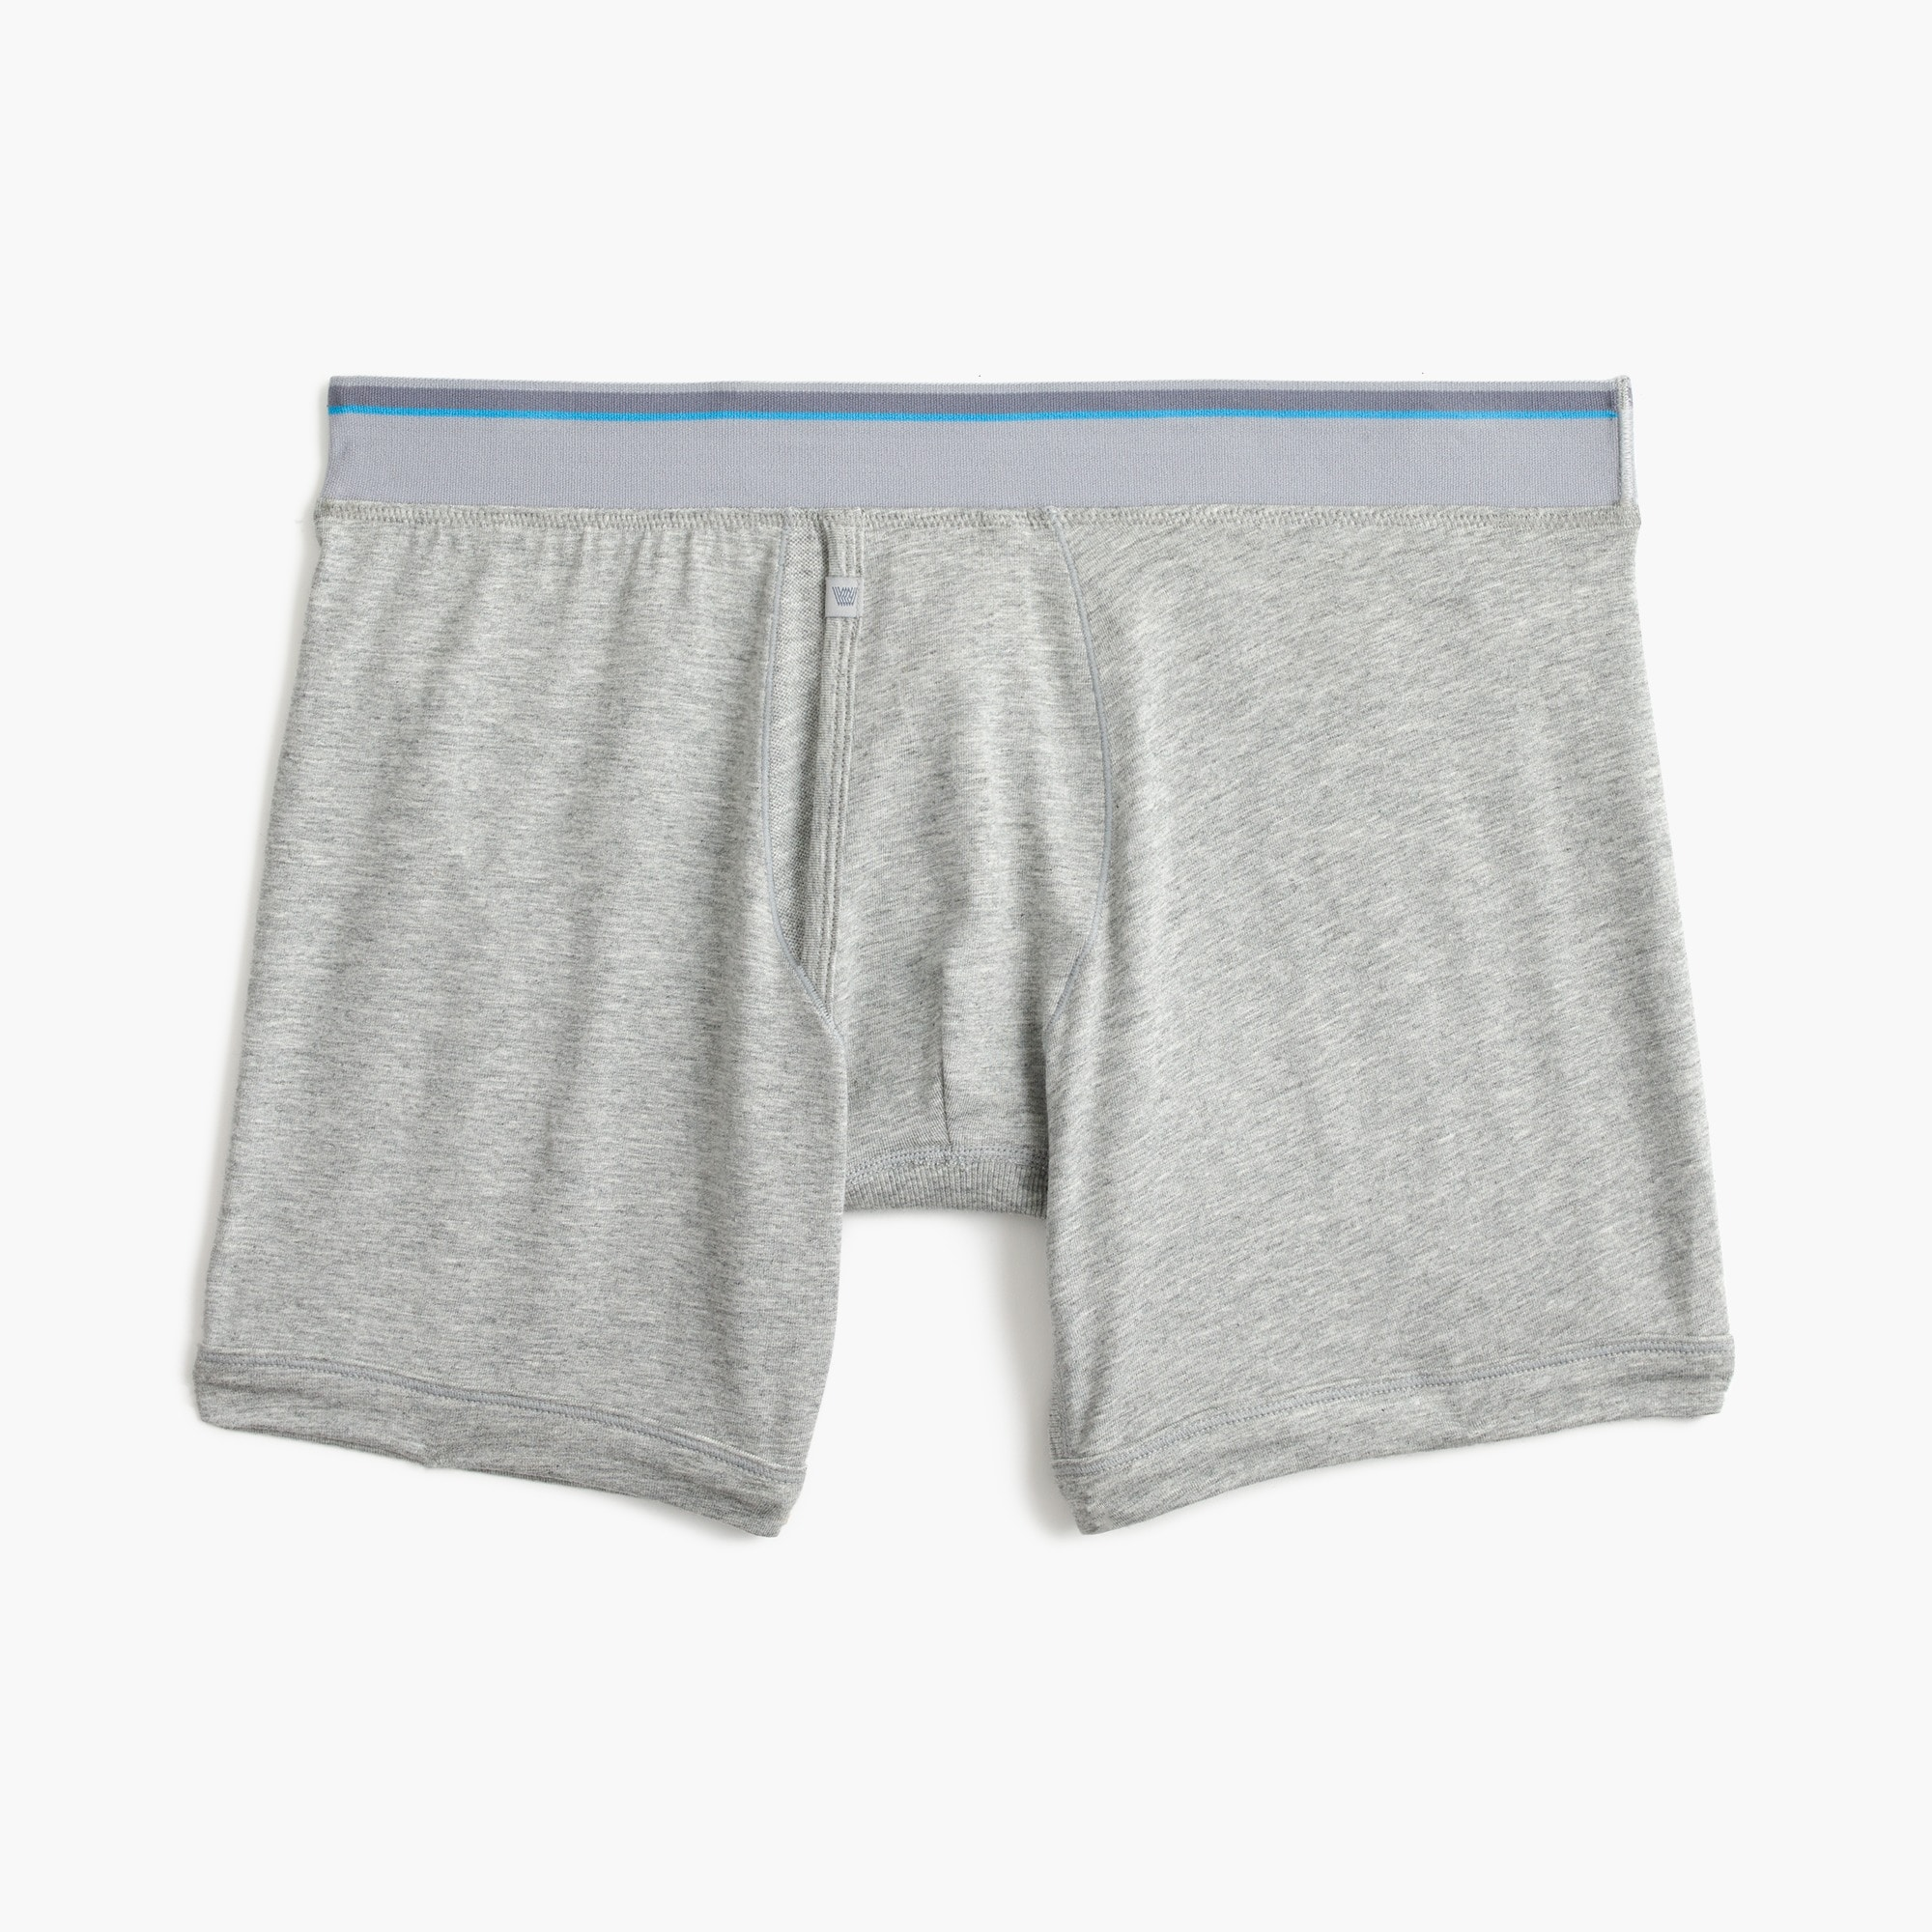 Mack Weldon® 18-hour boxer briefs men j.crew in good company c